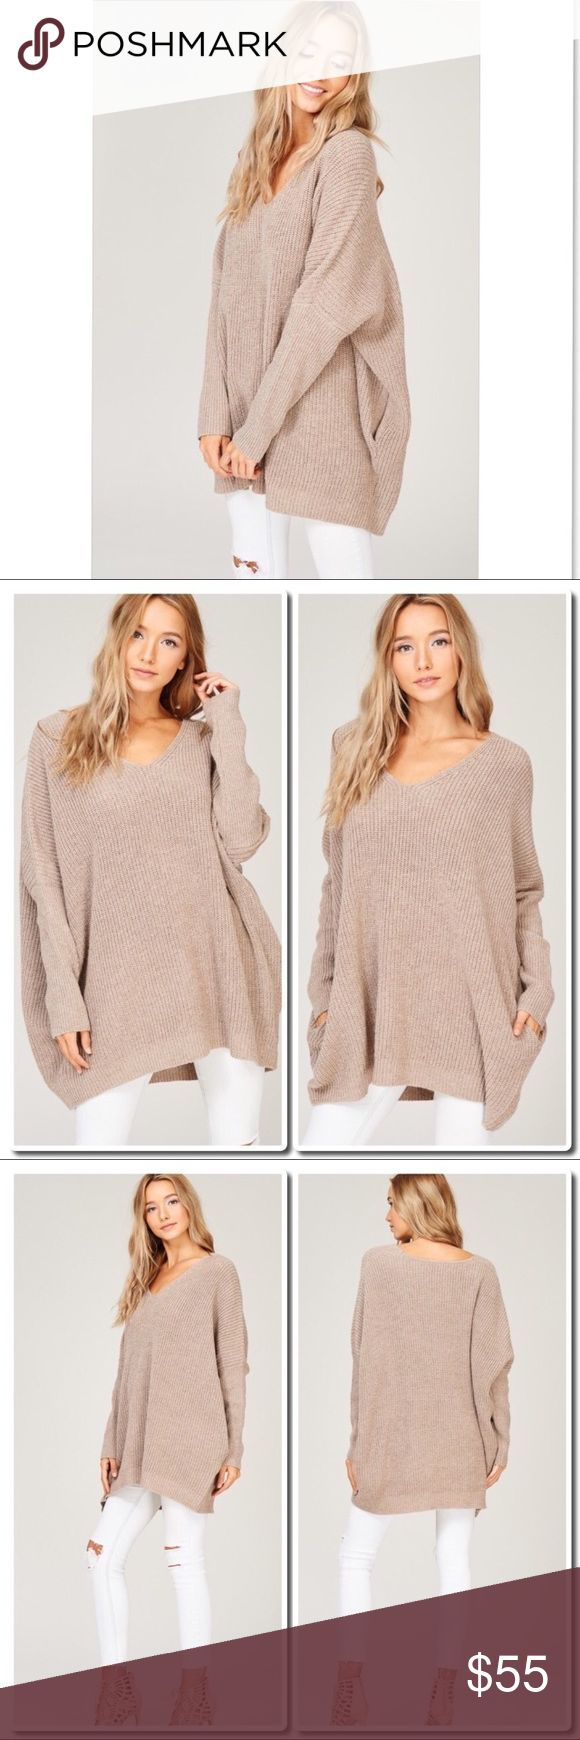 Knit Oversized Sweater/Dress in Mocha PRICE IS FIRM -                     Description: - Oversized Knit crochet sweater dress - Raglan style puffy sleeves - Pockets at either side seam - Loose fit - V-neck - Model is 5 feet 9 inch 32B-23.5-34 and wearing a size Small  Category: Sweaters Sweaters V-Necks